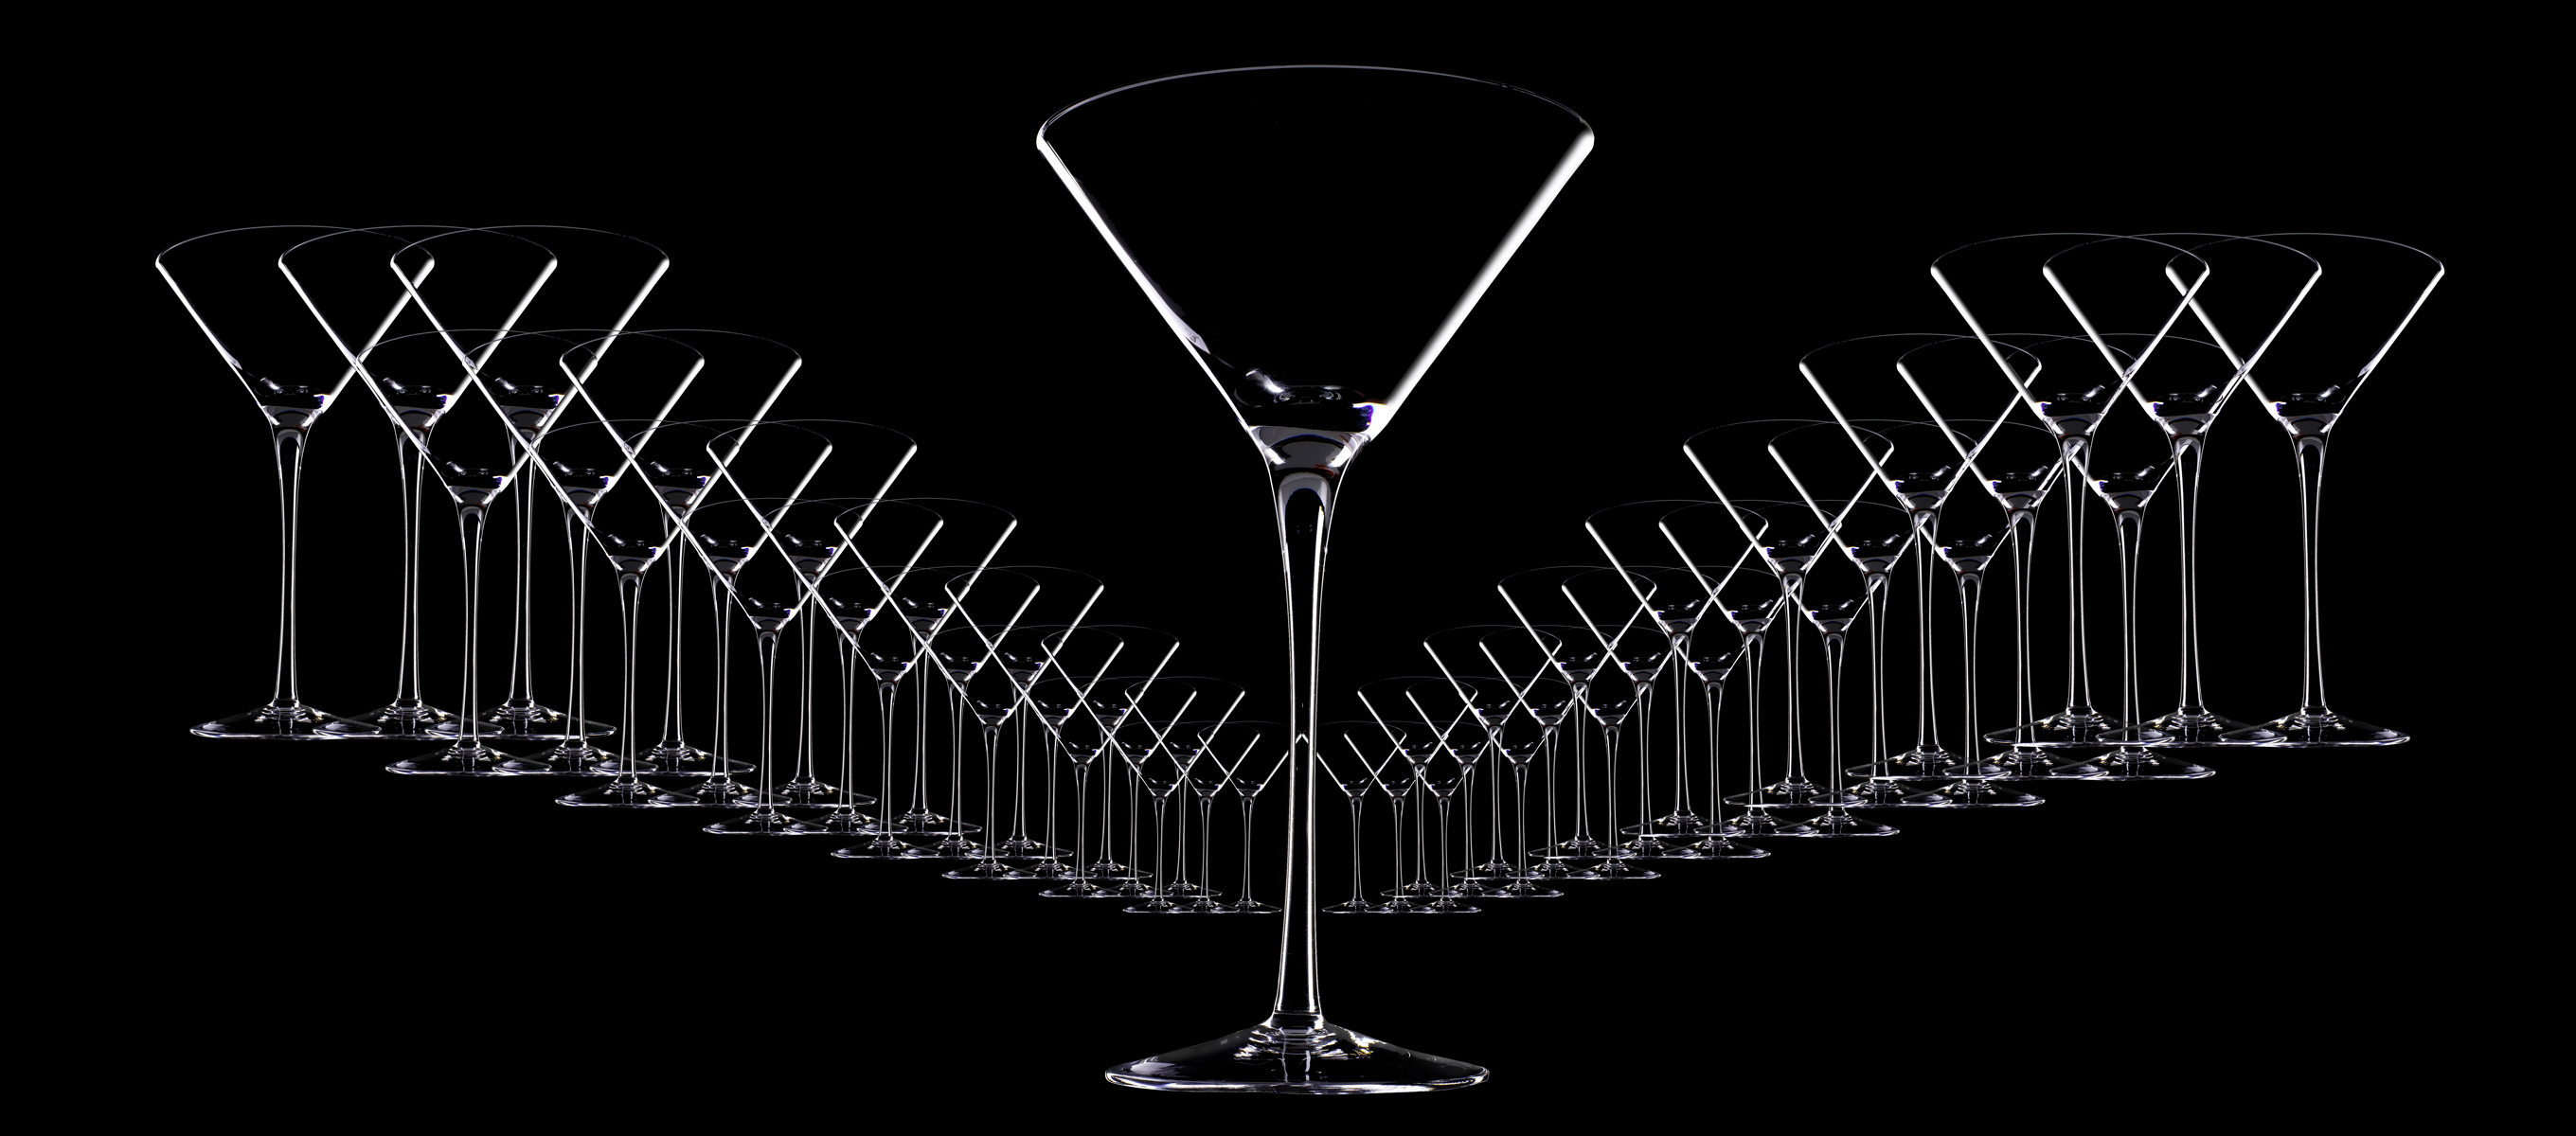 Martini glasses_ Got gin?-  Henrique Du Tiel